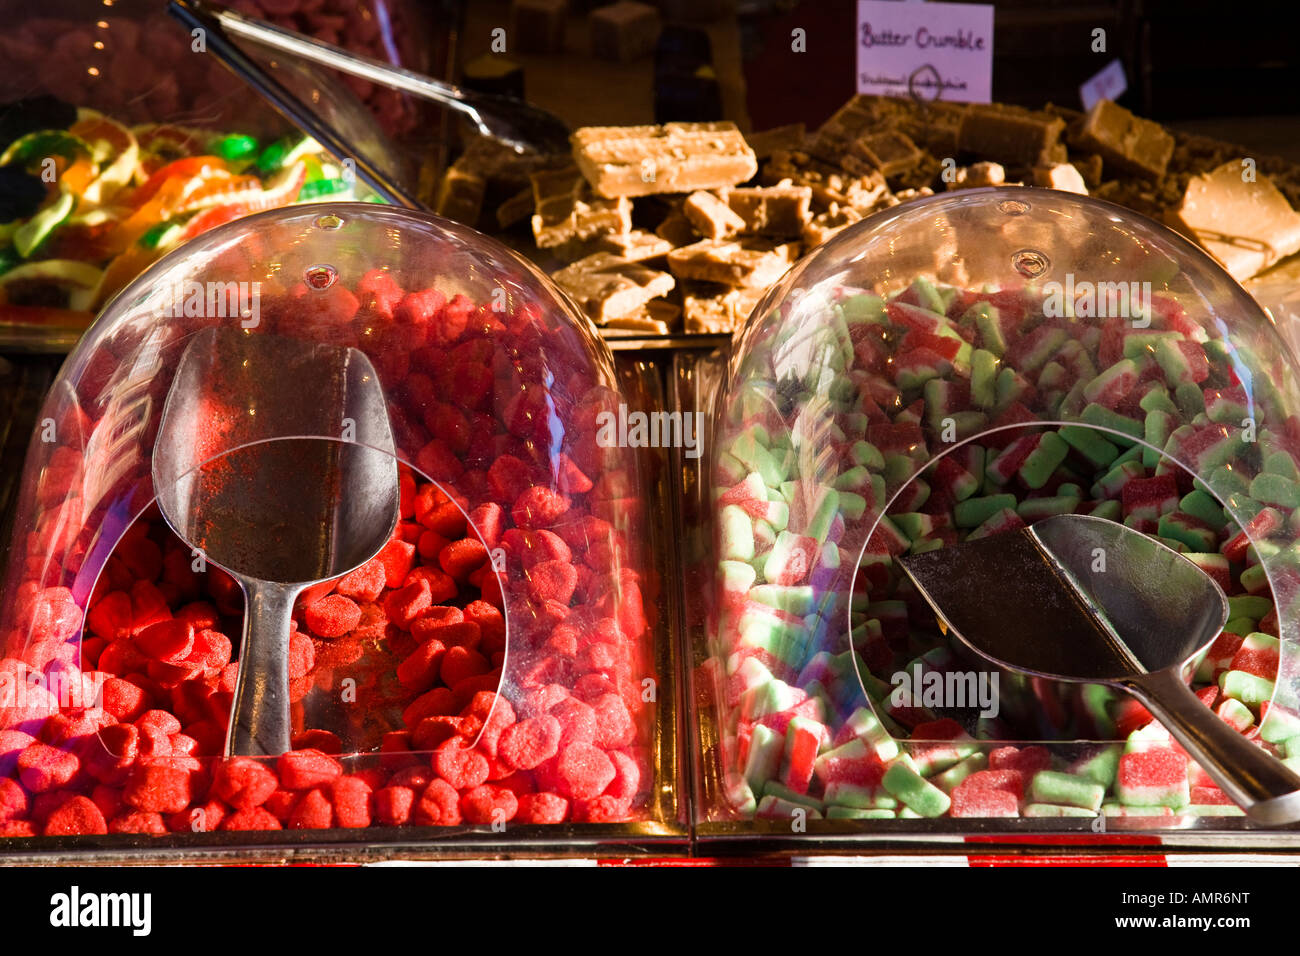 'Serve yourself' sweets on display on a market stall in Kingston upon Thames, Surrey, England. - Stock Image